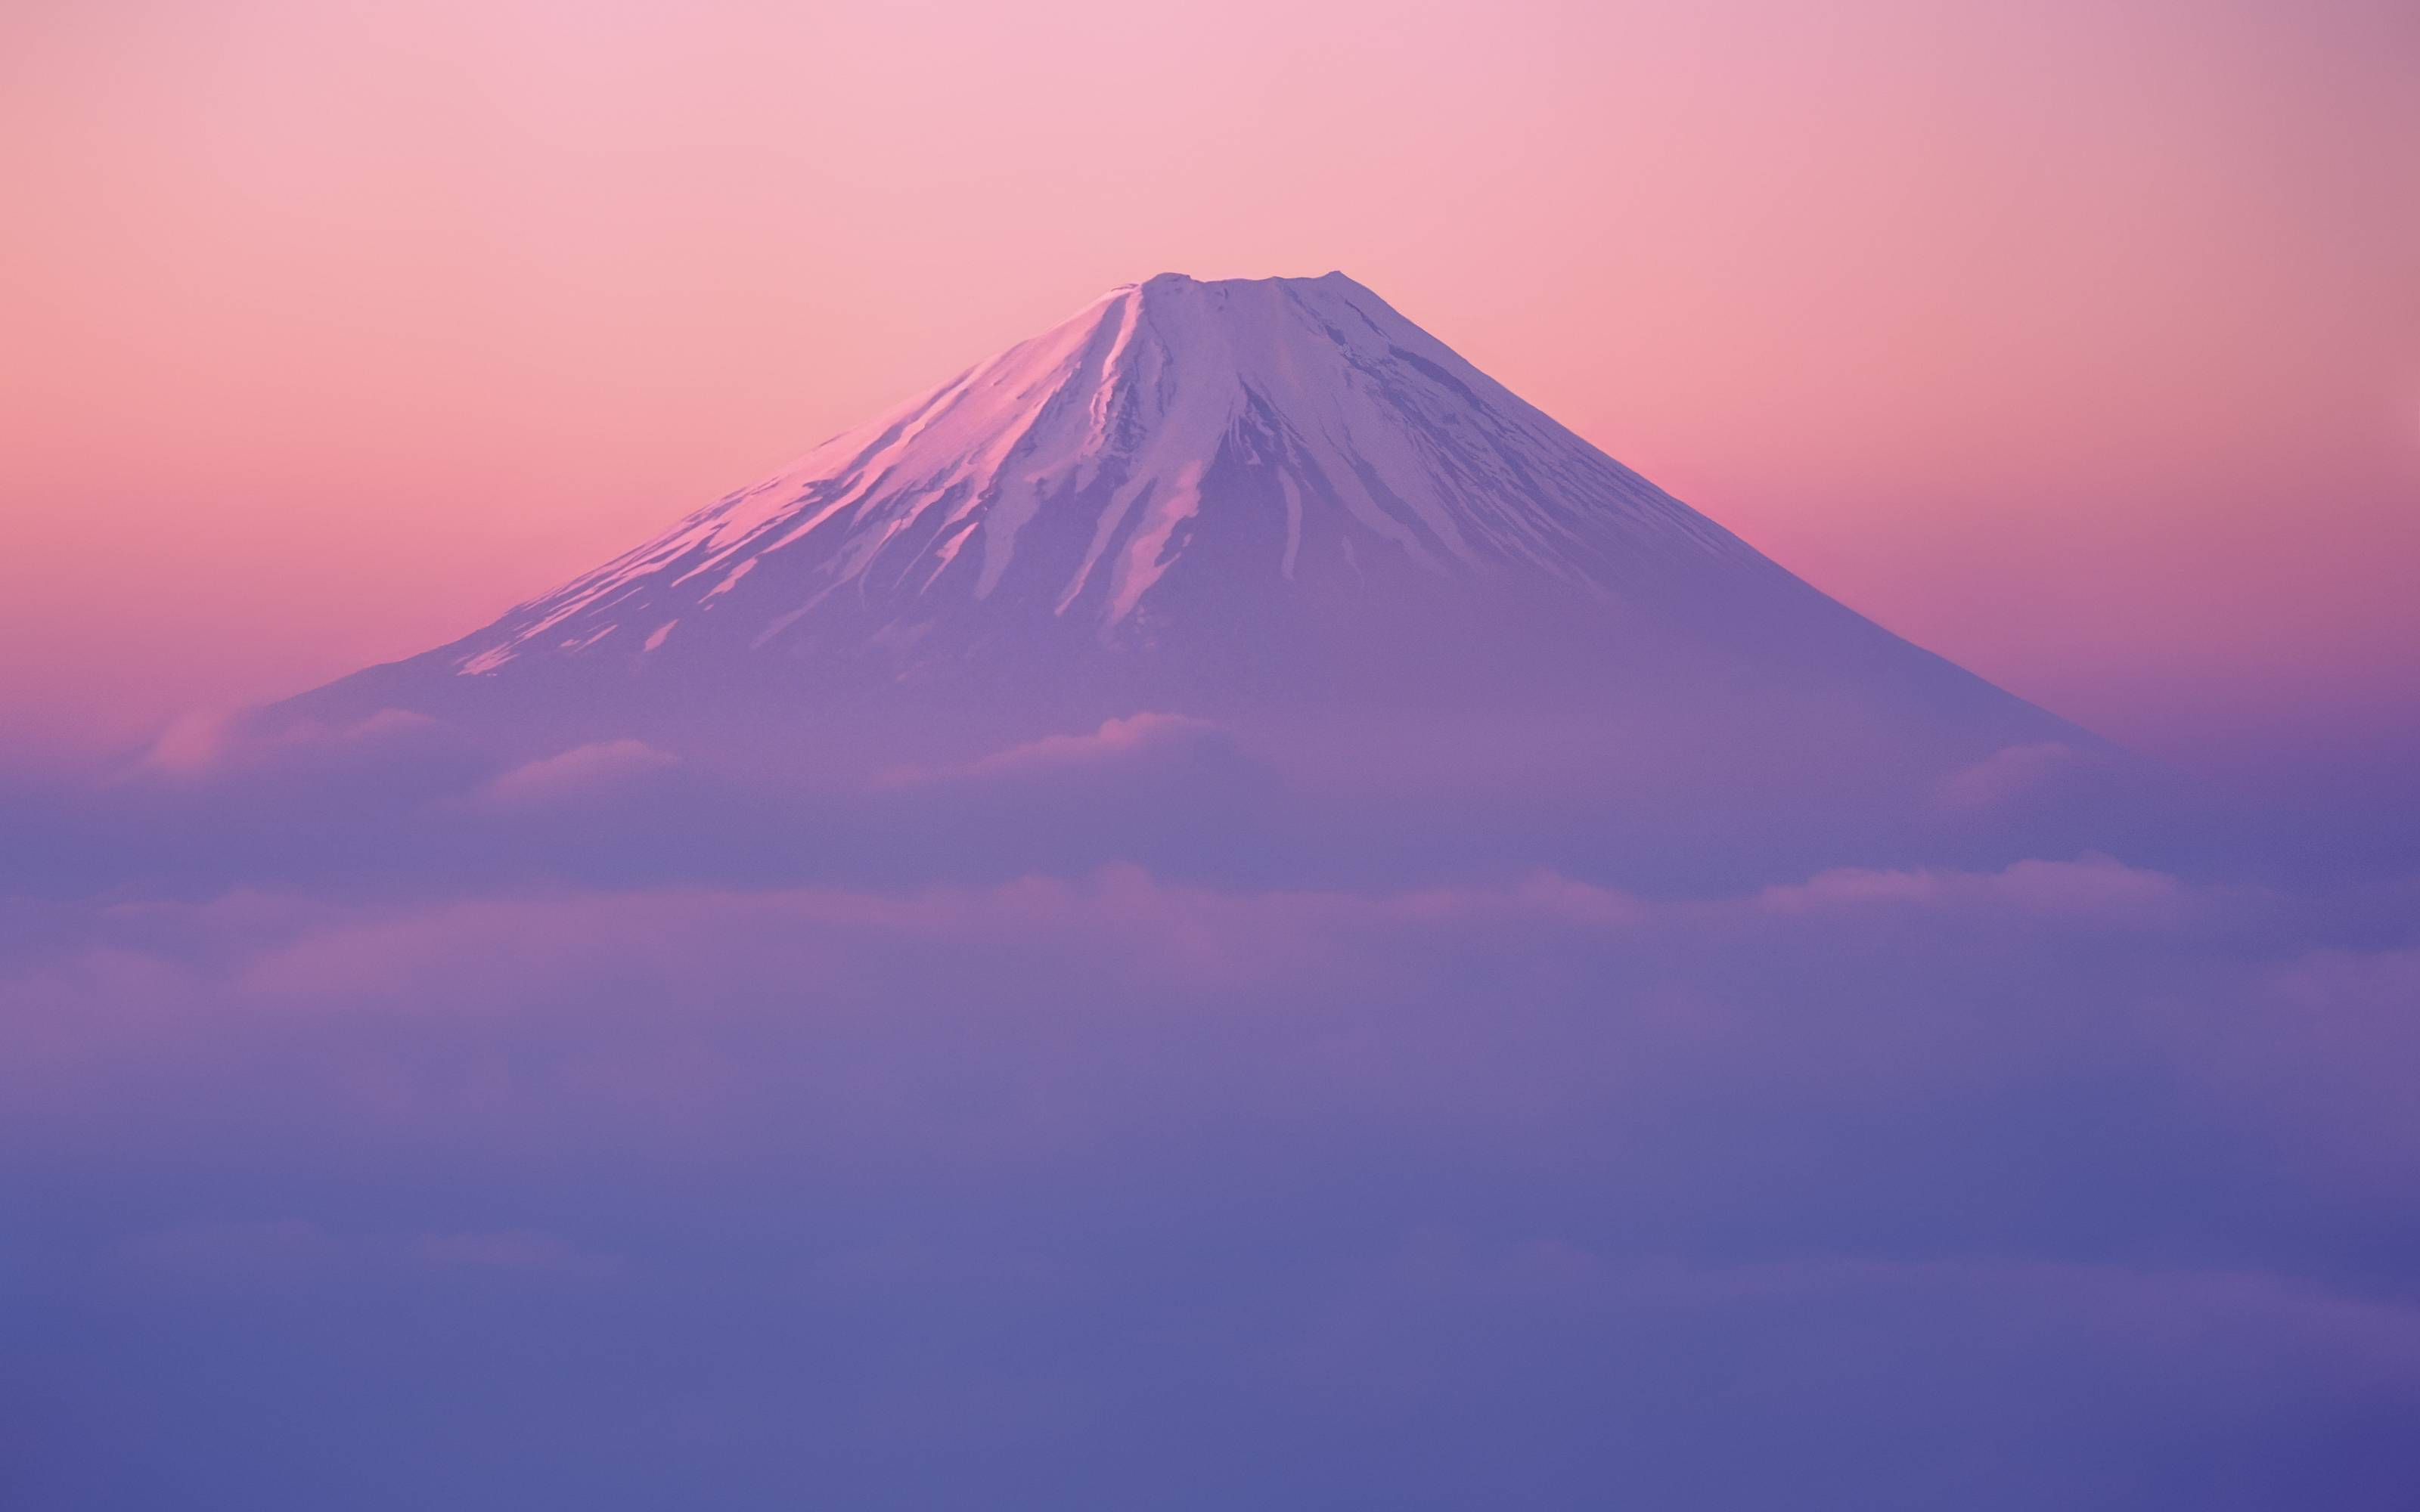 Mount Fuji Wallpapers 3200x2000